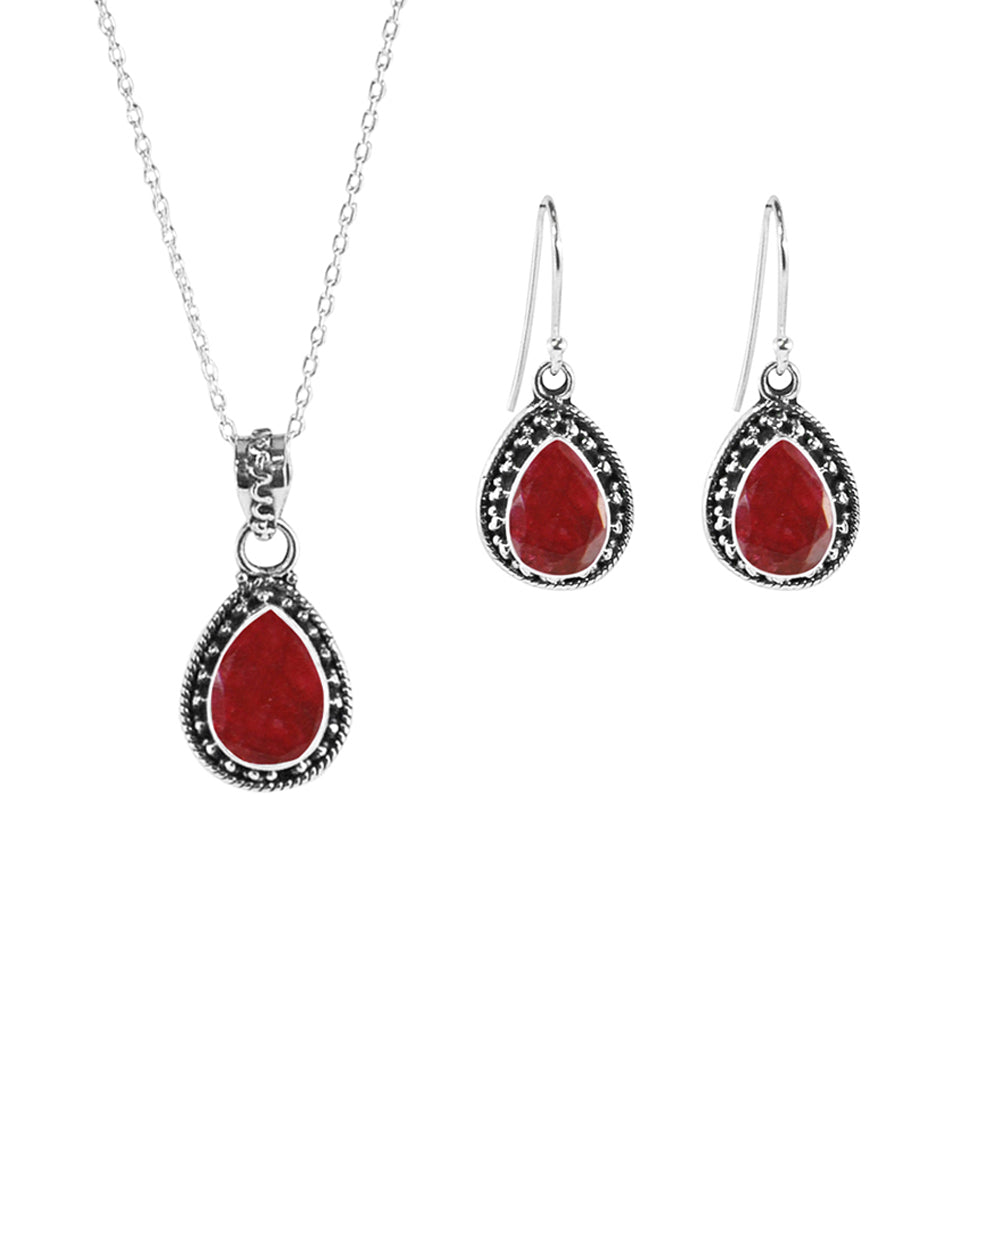 Amalfi Raw Ruby Necklace and Earrings Set in Sterling Silver